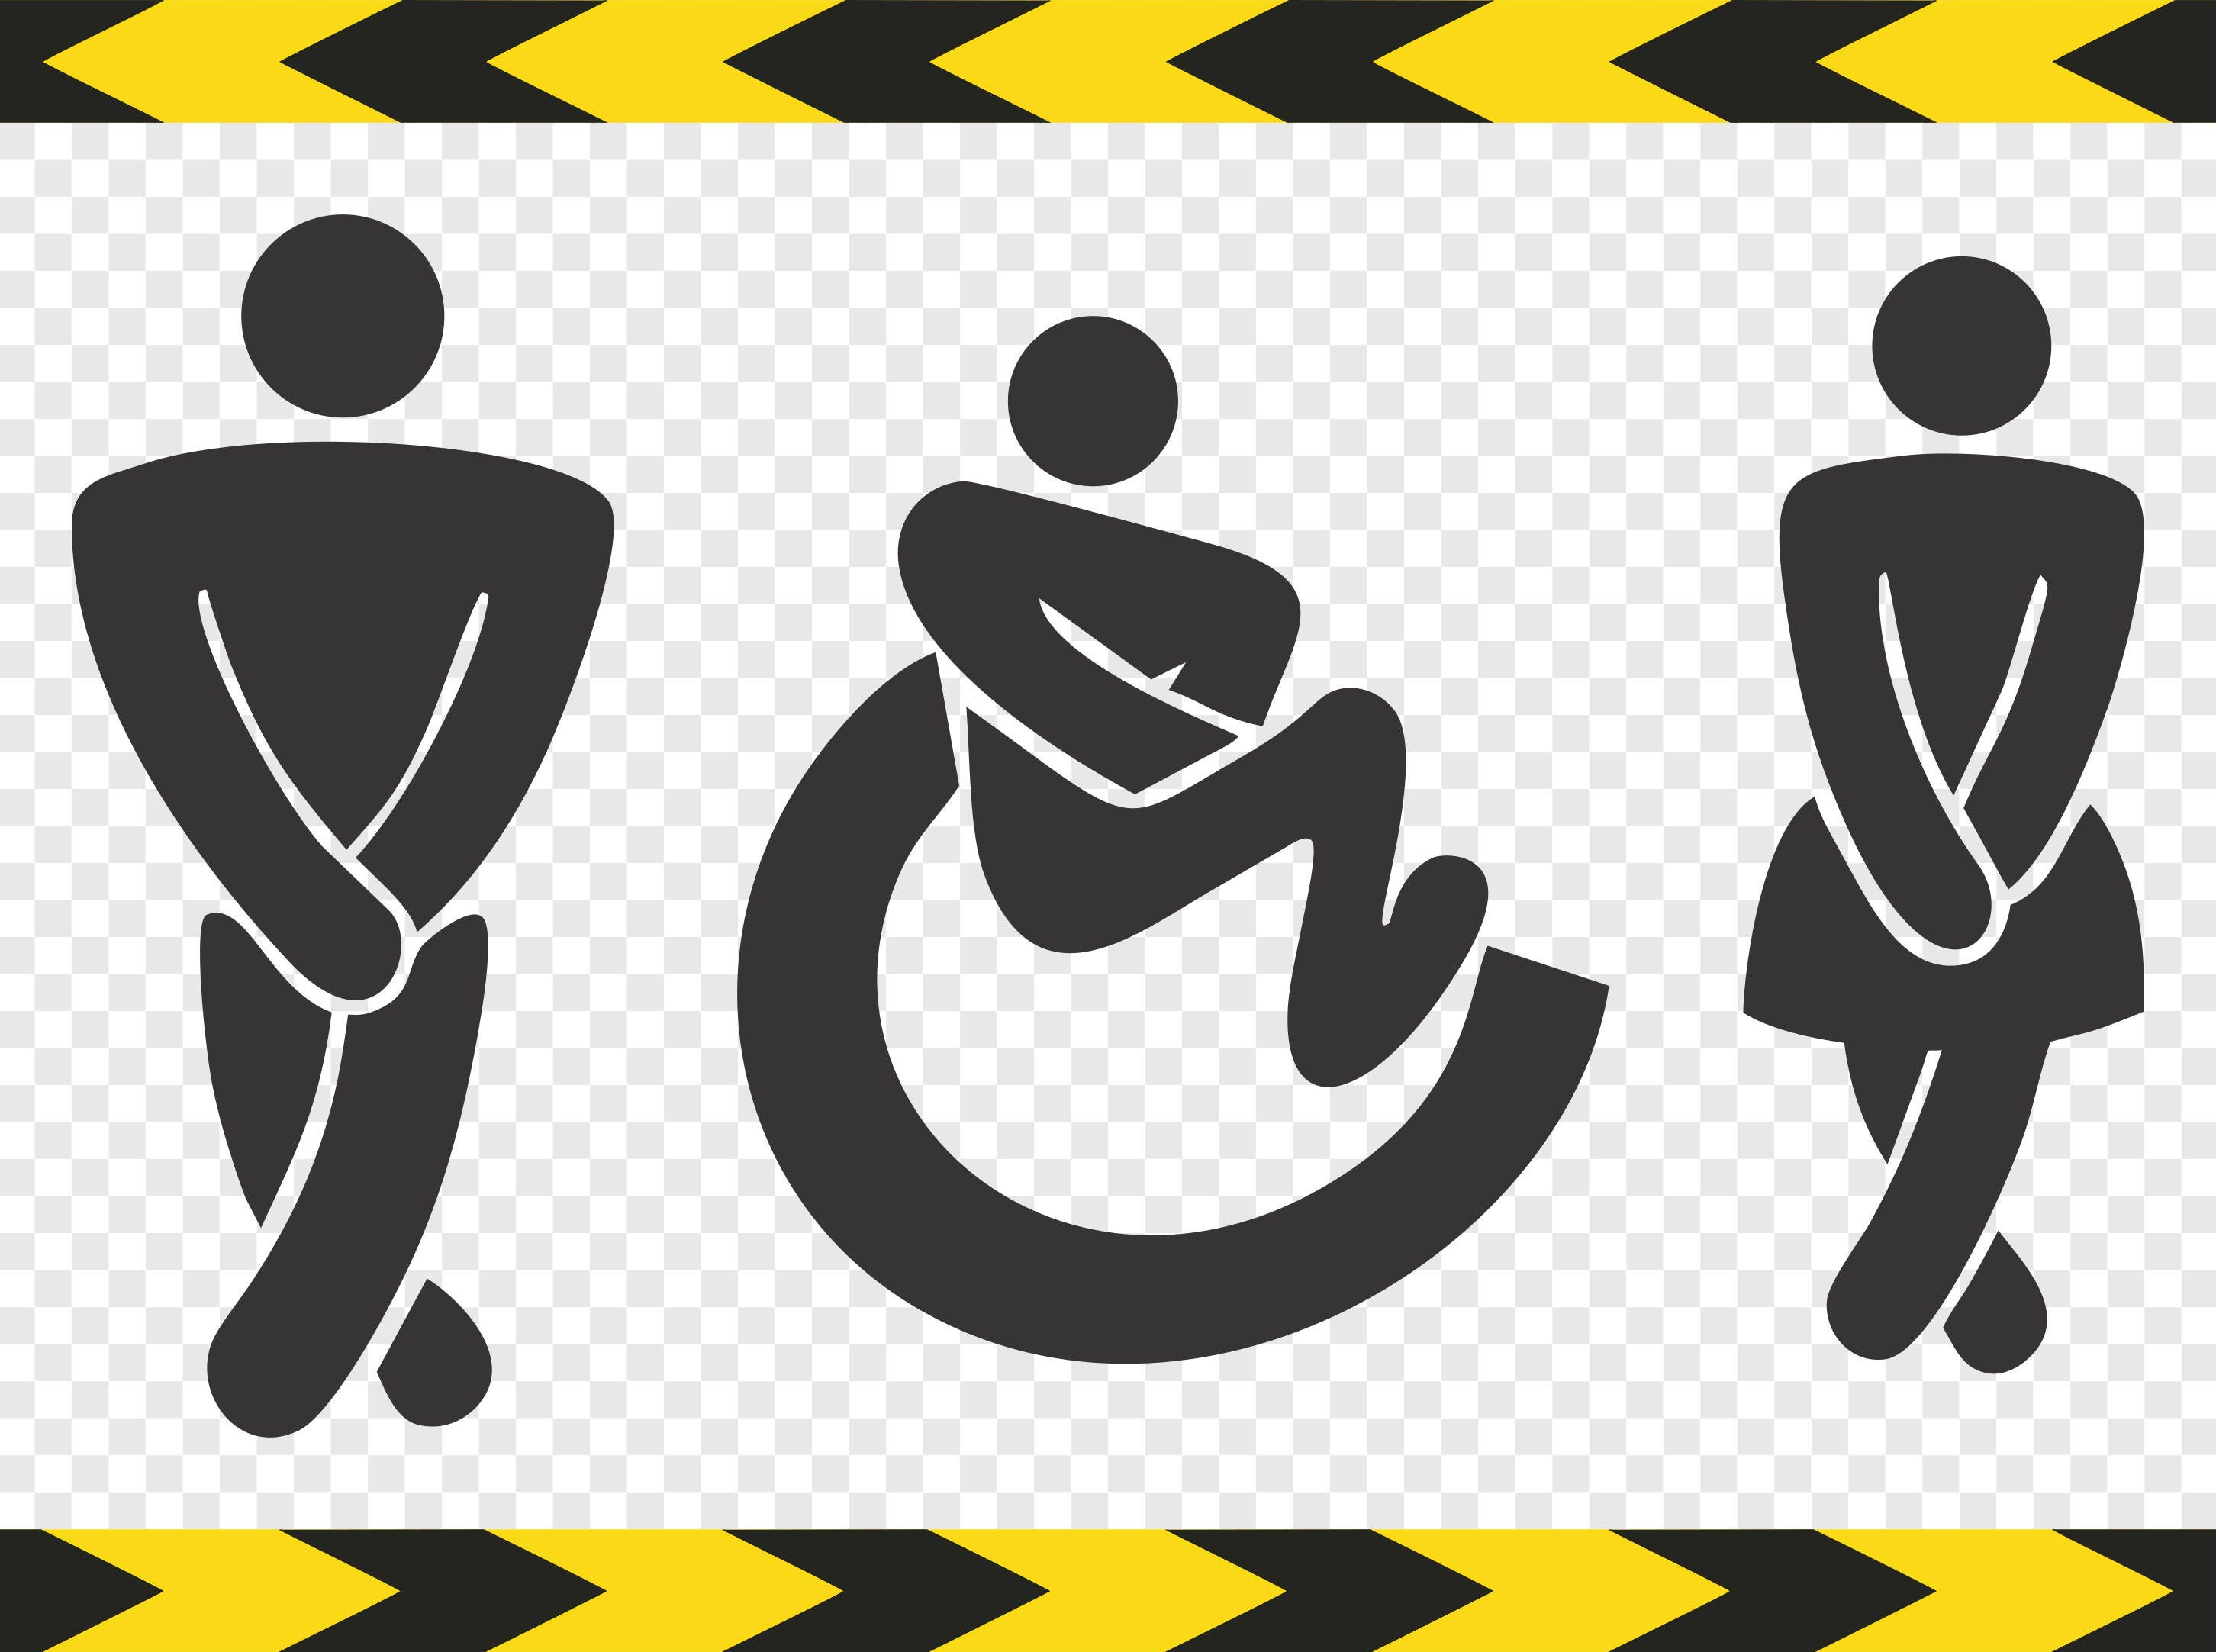 Symbol svg collection female symbol male symbol sign infinity rest room wc toilet sign svg clipart hendicap handicapped wheelchair disabled person decal dxf pdf png files biocorpaavc